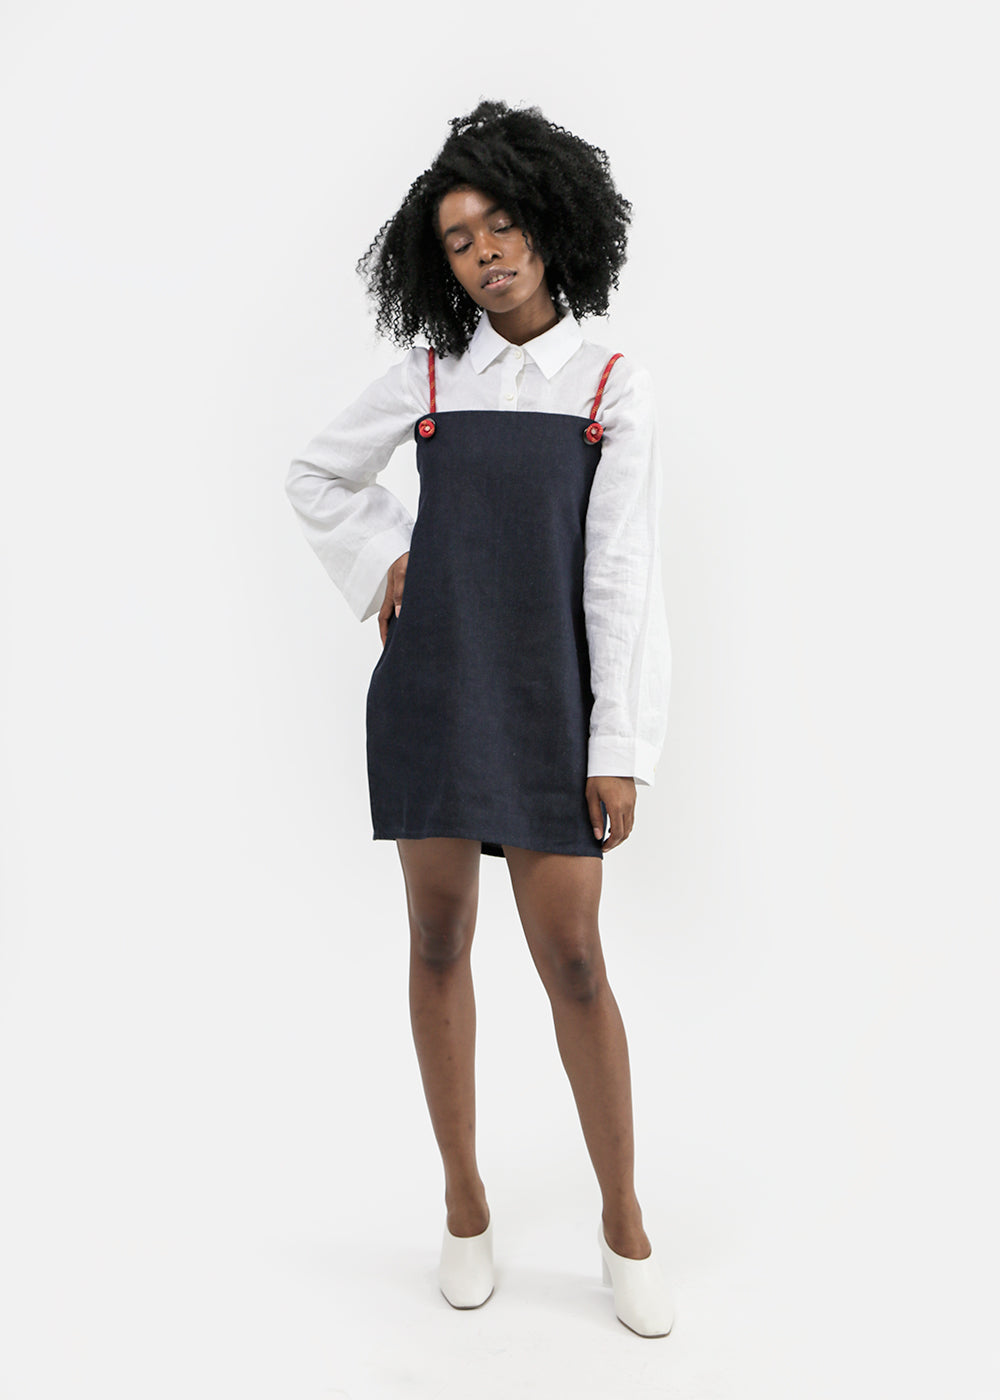 Vale Denim Rigging Dress — Shop sustainable fashion and slow fashion at New Classics Studios